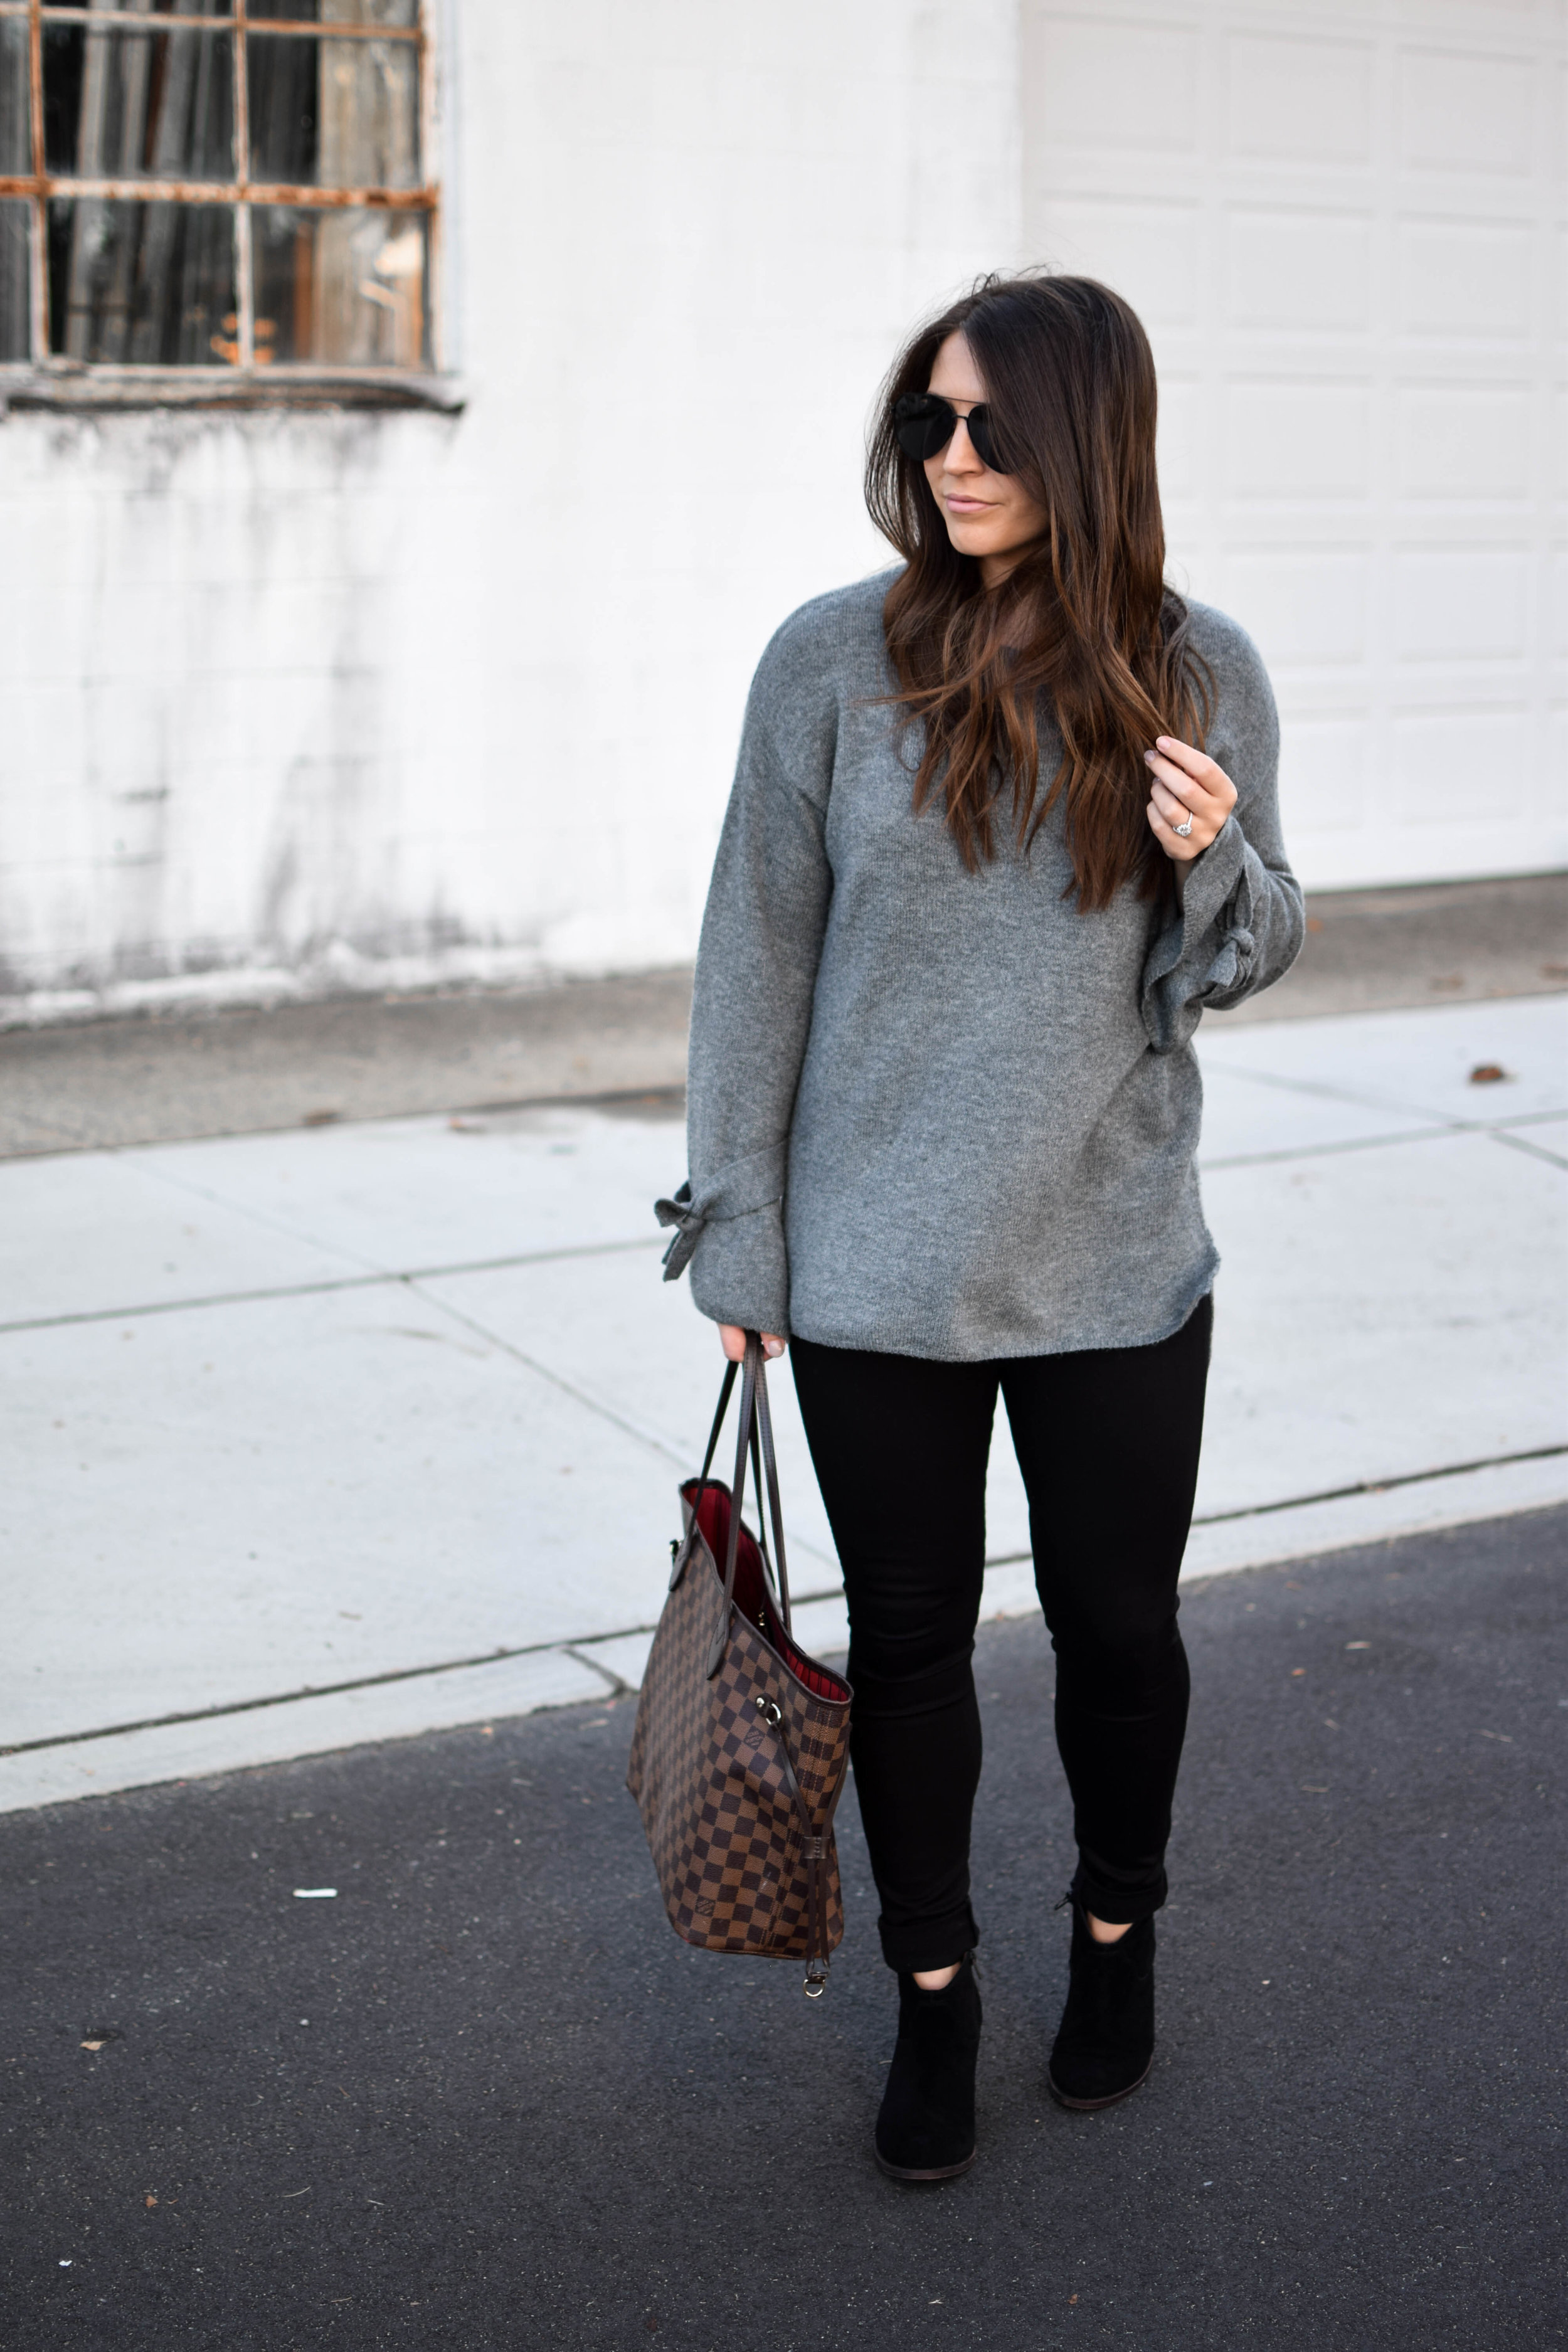 fall fashion / fall outfit ideas / fall outfit inspiration / fall closet essentials / black denim / black booties / tie sleeve sweater